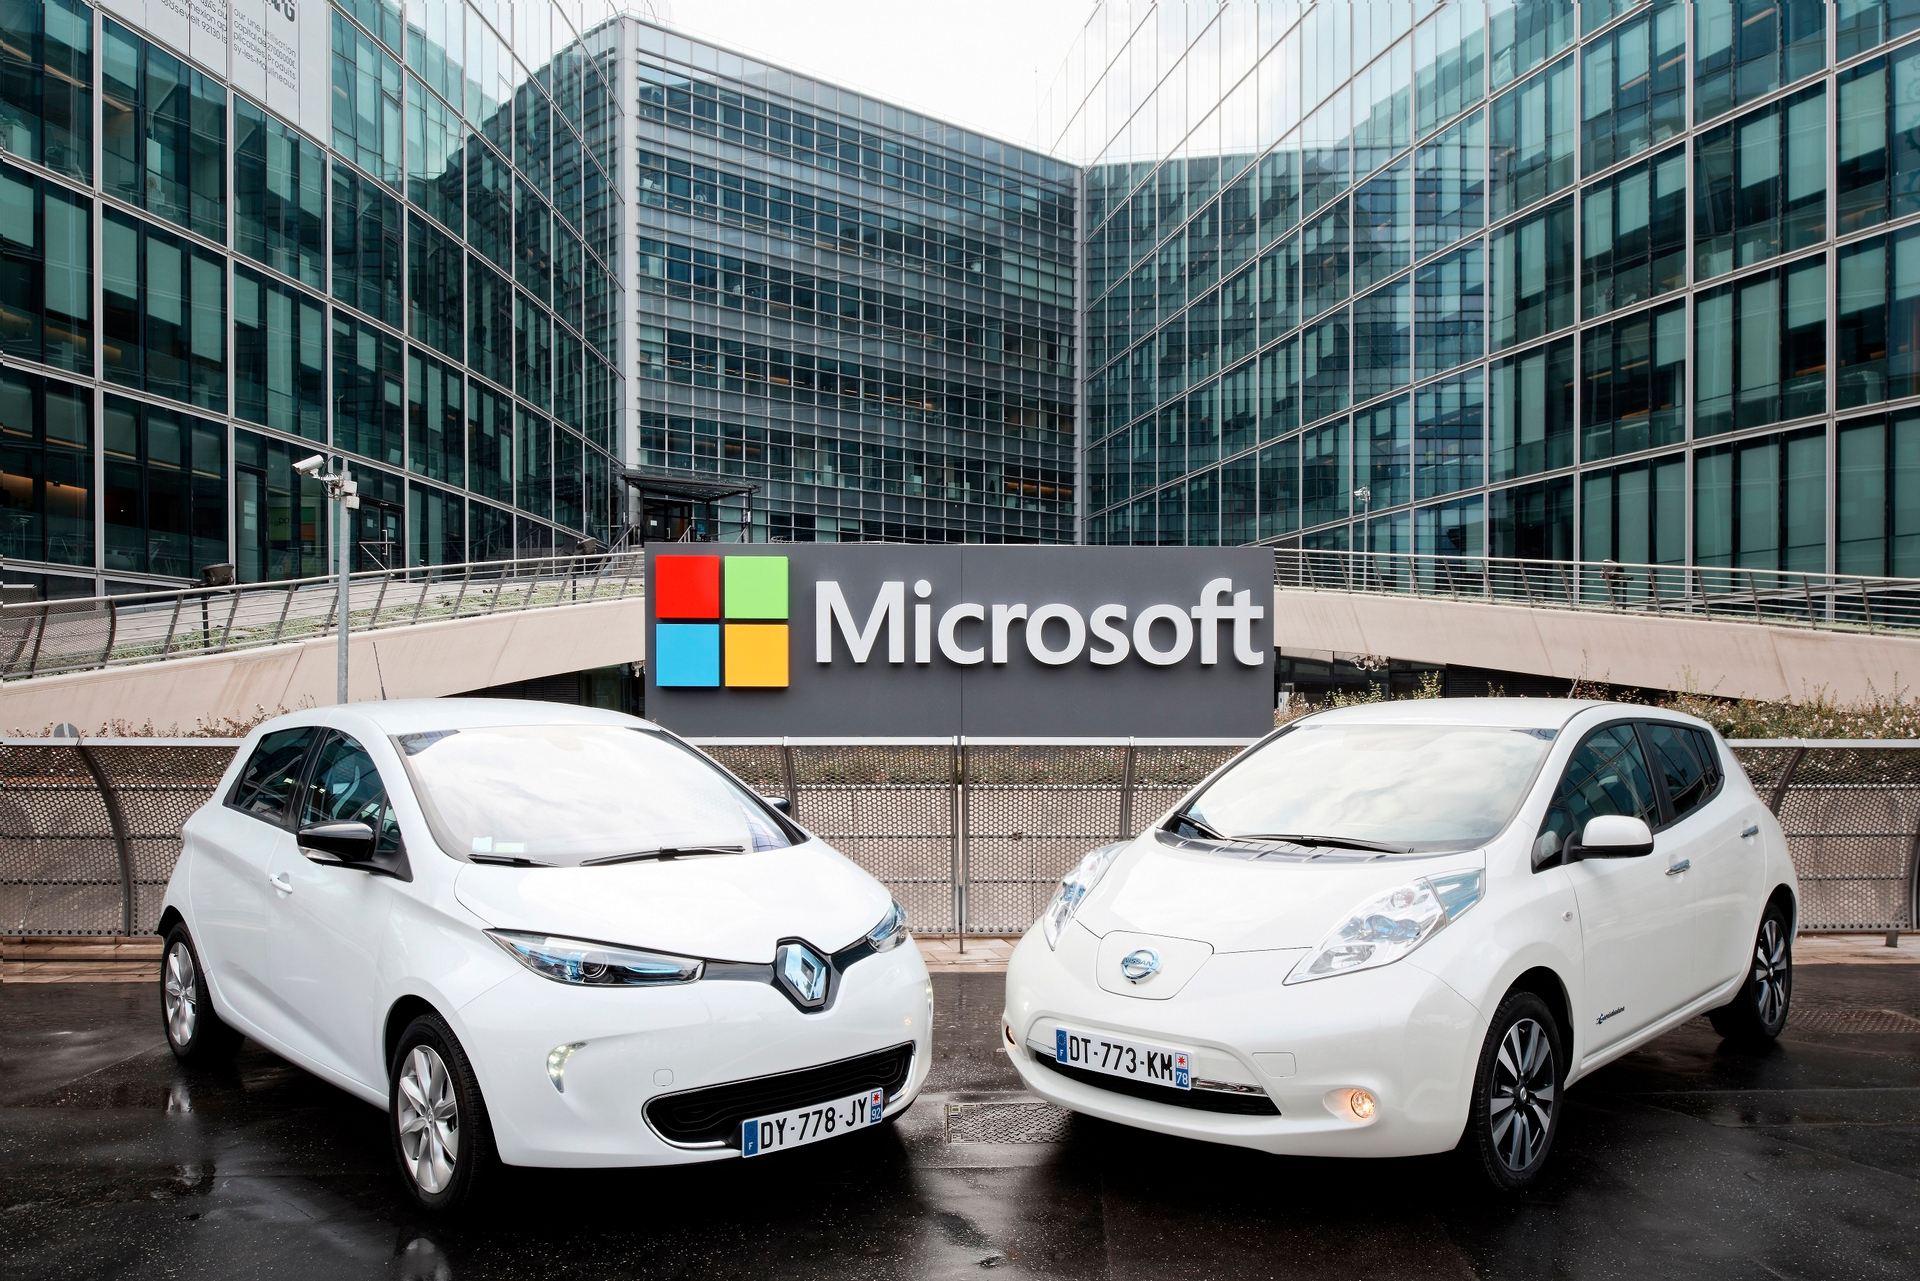 Renault-Nissan and Microsoft partner to deliver the future of connected driving © Nissan Motor Co., Ltd.